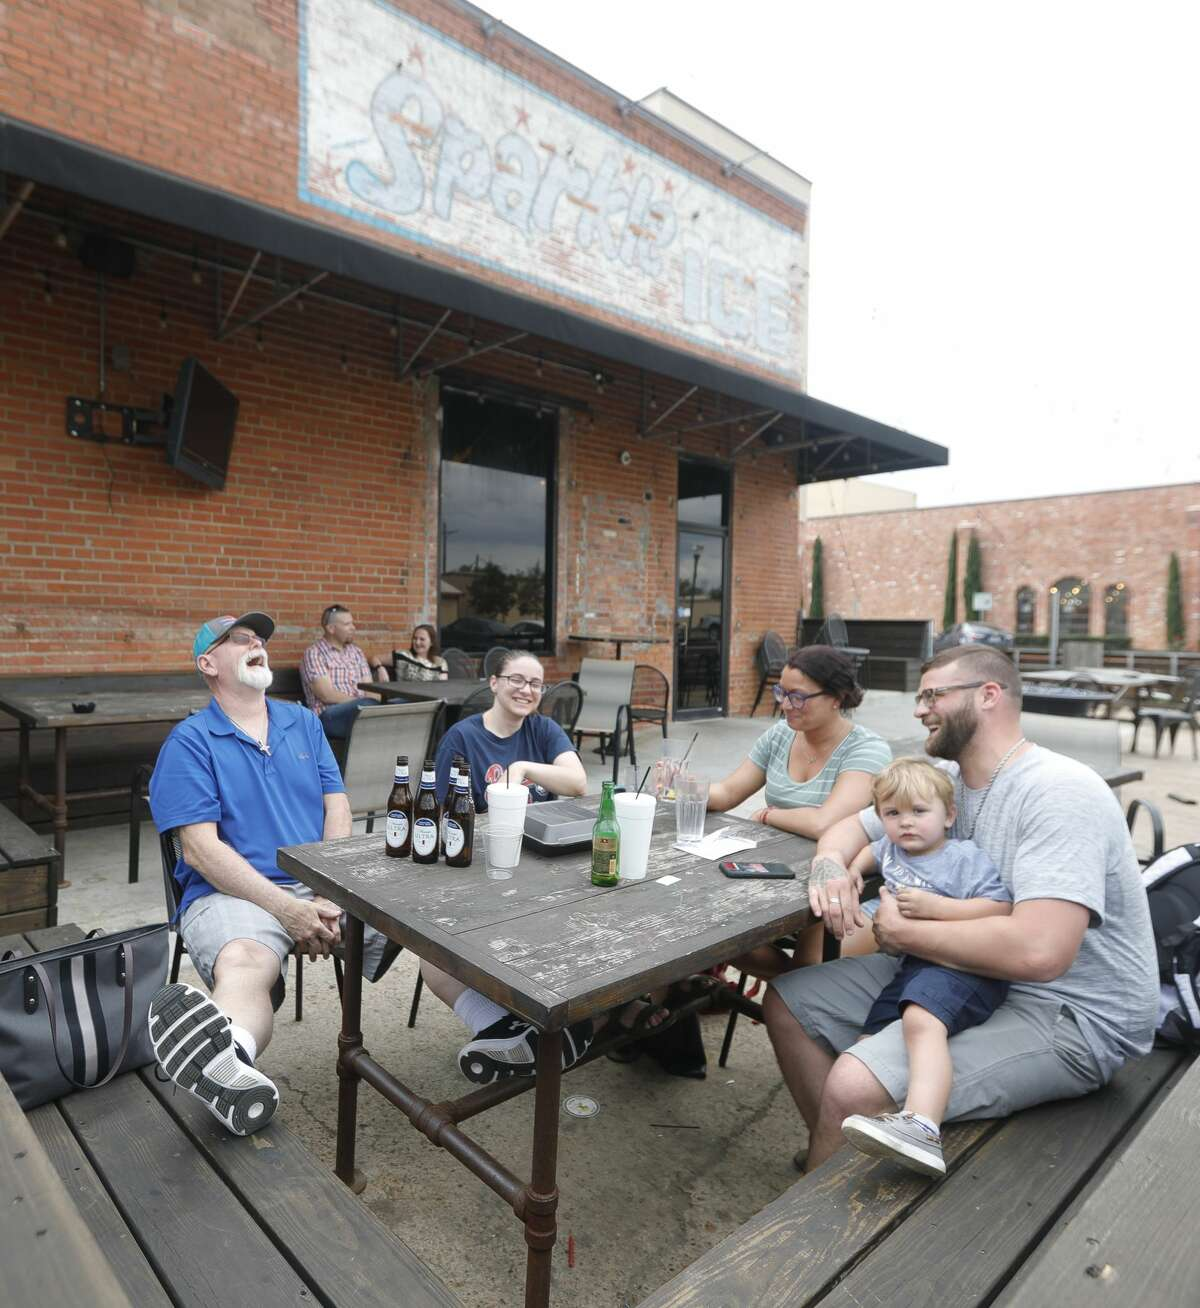 Rodney Diel, left, shares a laugh with Jessica Wiley, Brittney Bottoms, Dalton Demny and his two-year-old son, Deklyn, as the family enjoys an afternoon at Pacific Yard House, Wednesday, March 18, 2020, in Conroe. Montgomery County Judge Mark Keough issued new occupancy restrictions, which orders all restaurants and bars in the county to cease all onsite dining starting March 18. Restaurants are still allowed to continue to-go, takeout, delivery and catering operations for customers.